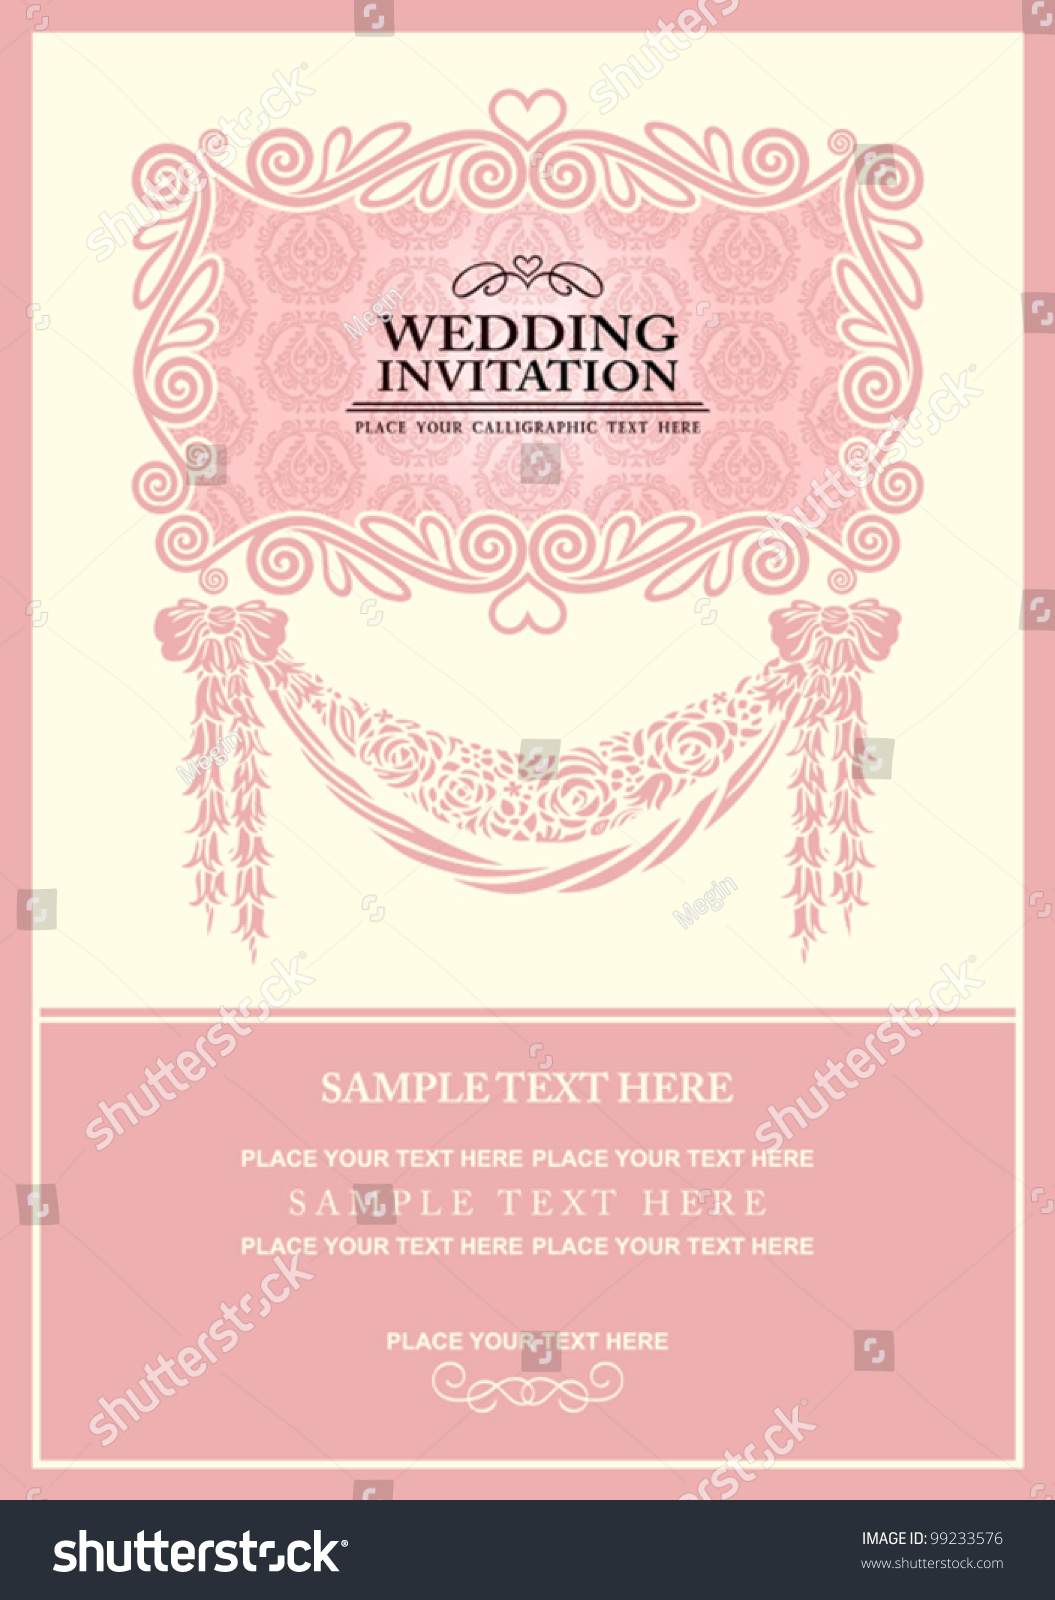 Wedding Invitation Card Abstract Background Vintage Stock Vector ...